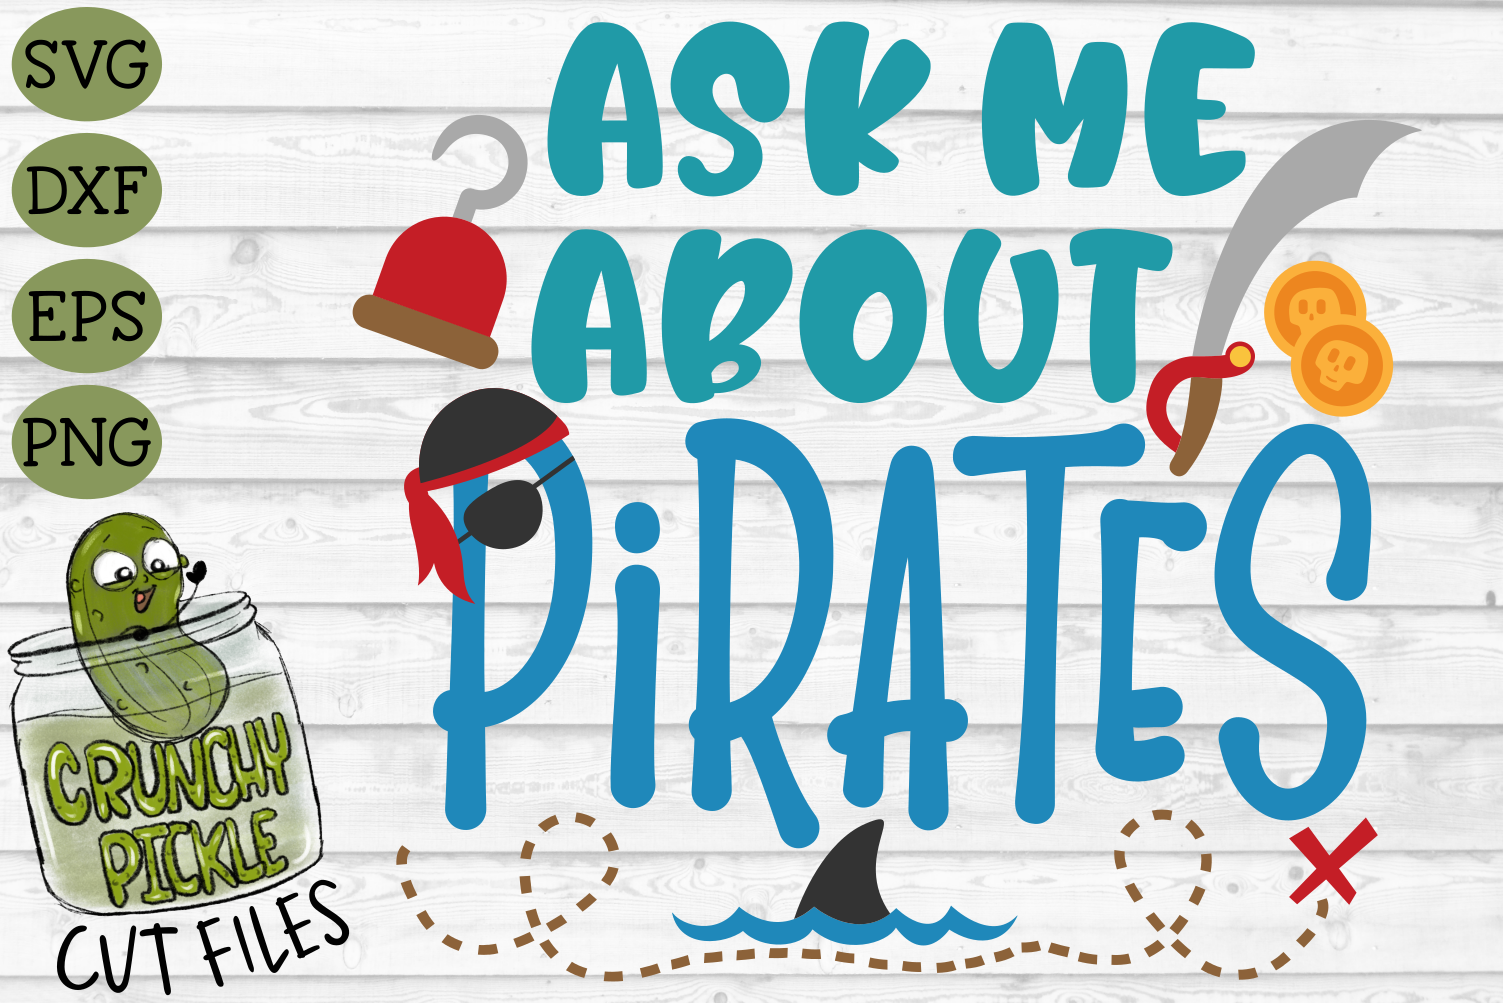 Ask Me About Pirates SVG example image 2